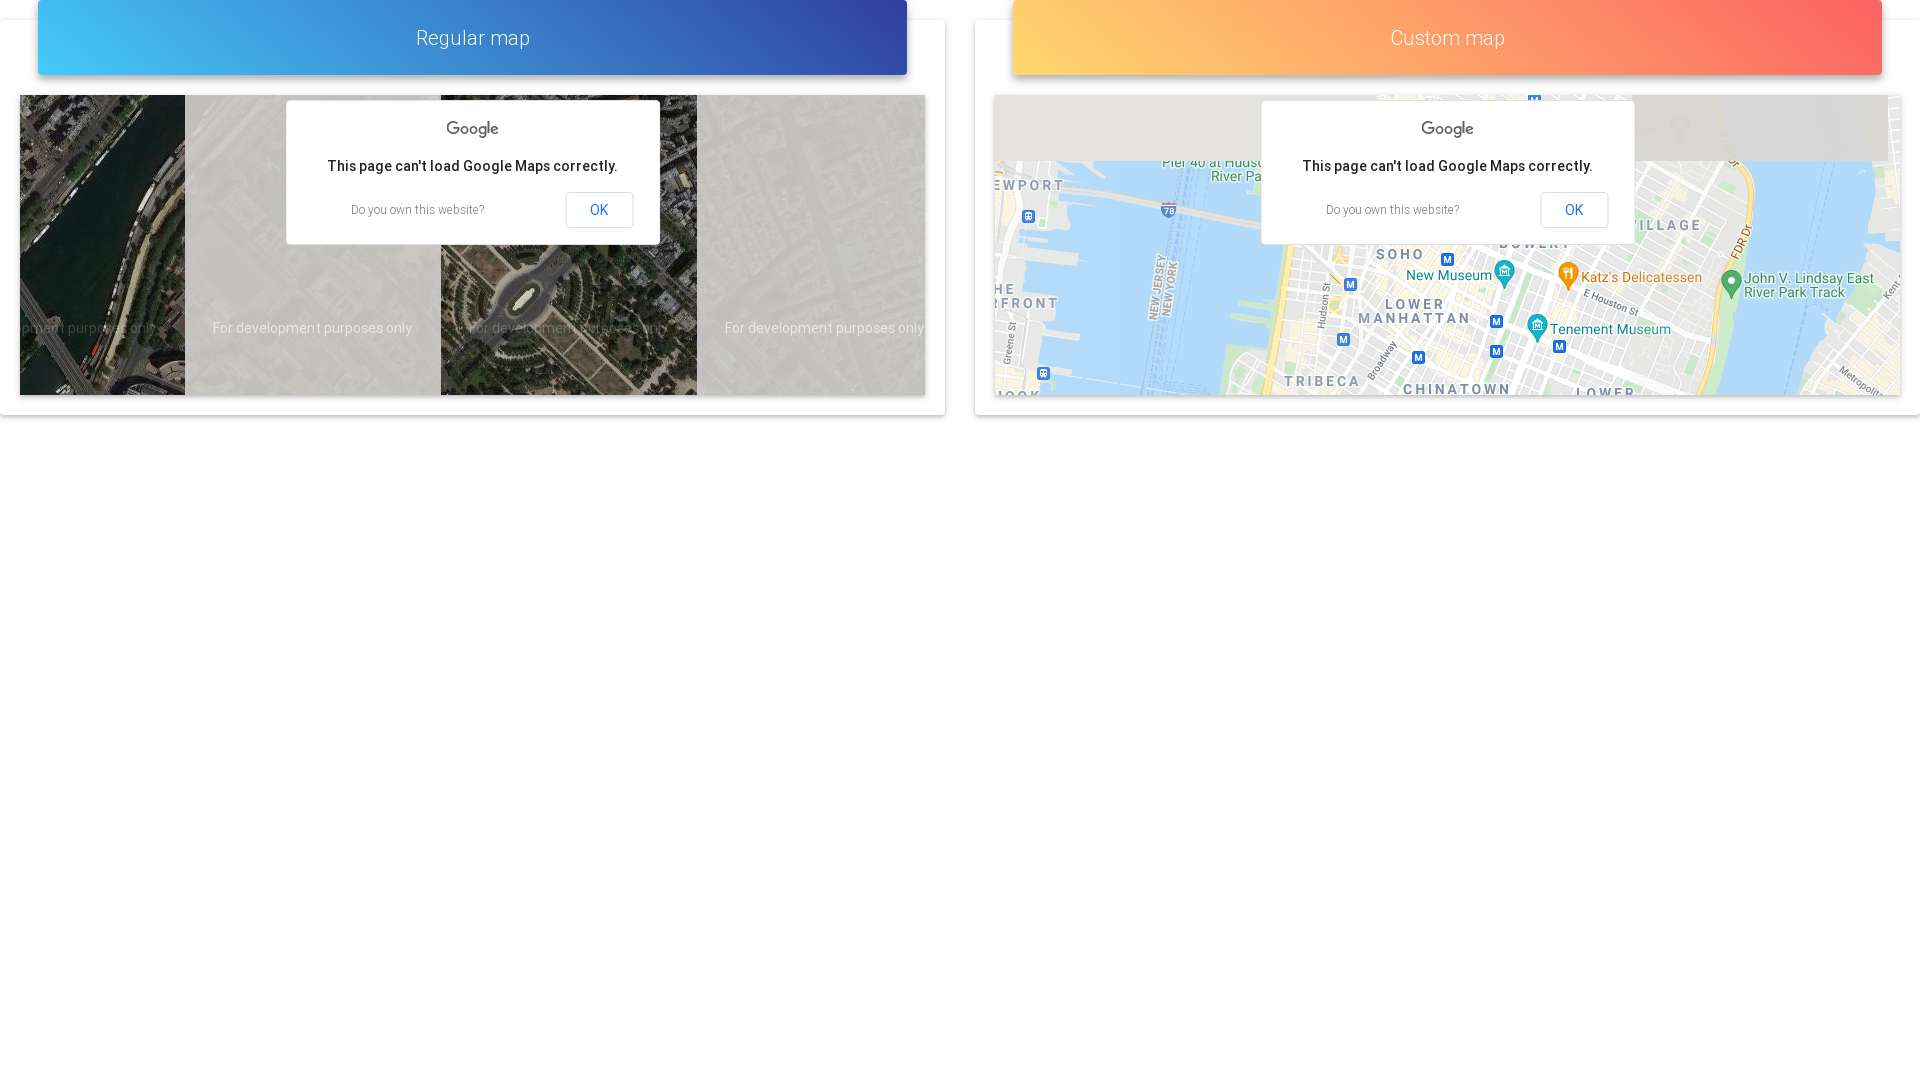 Example usage of Google Maps